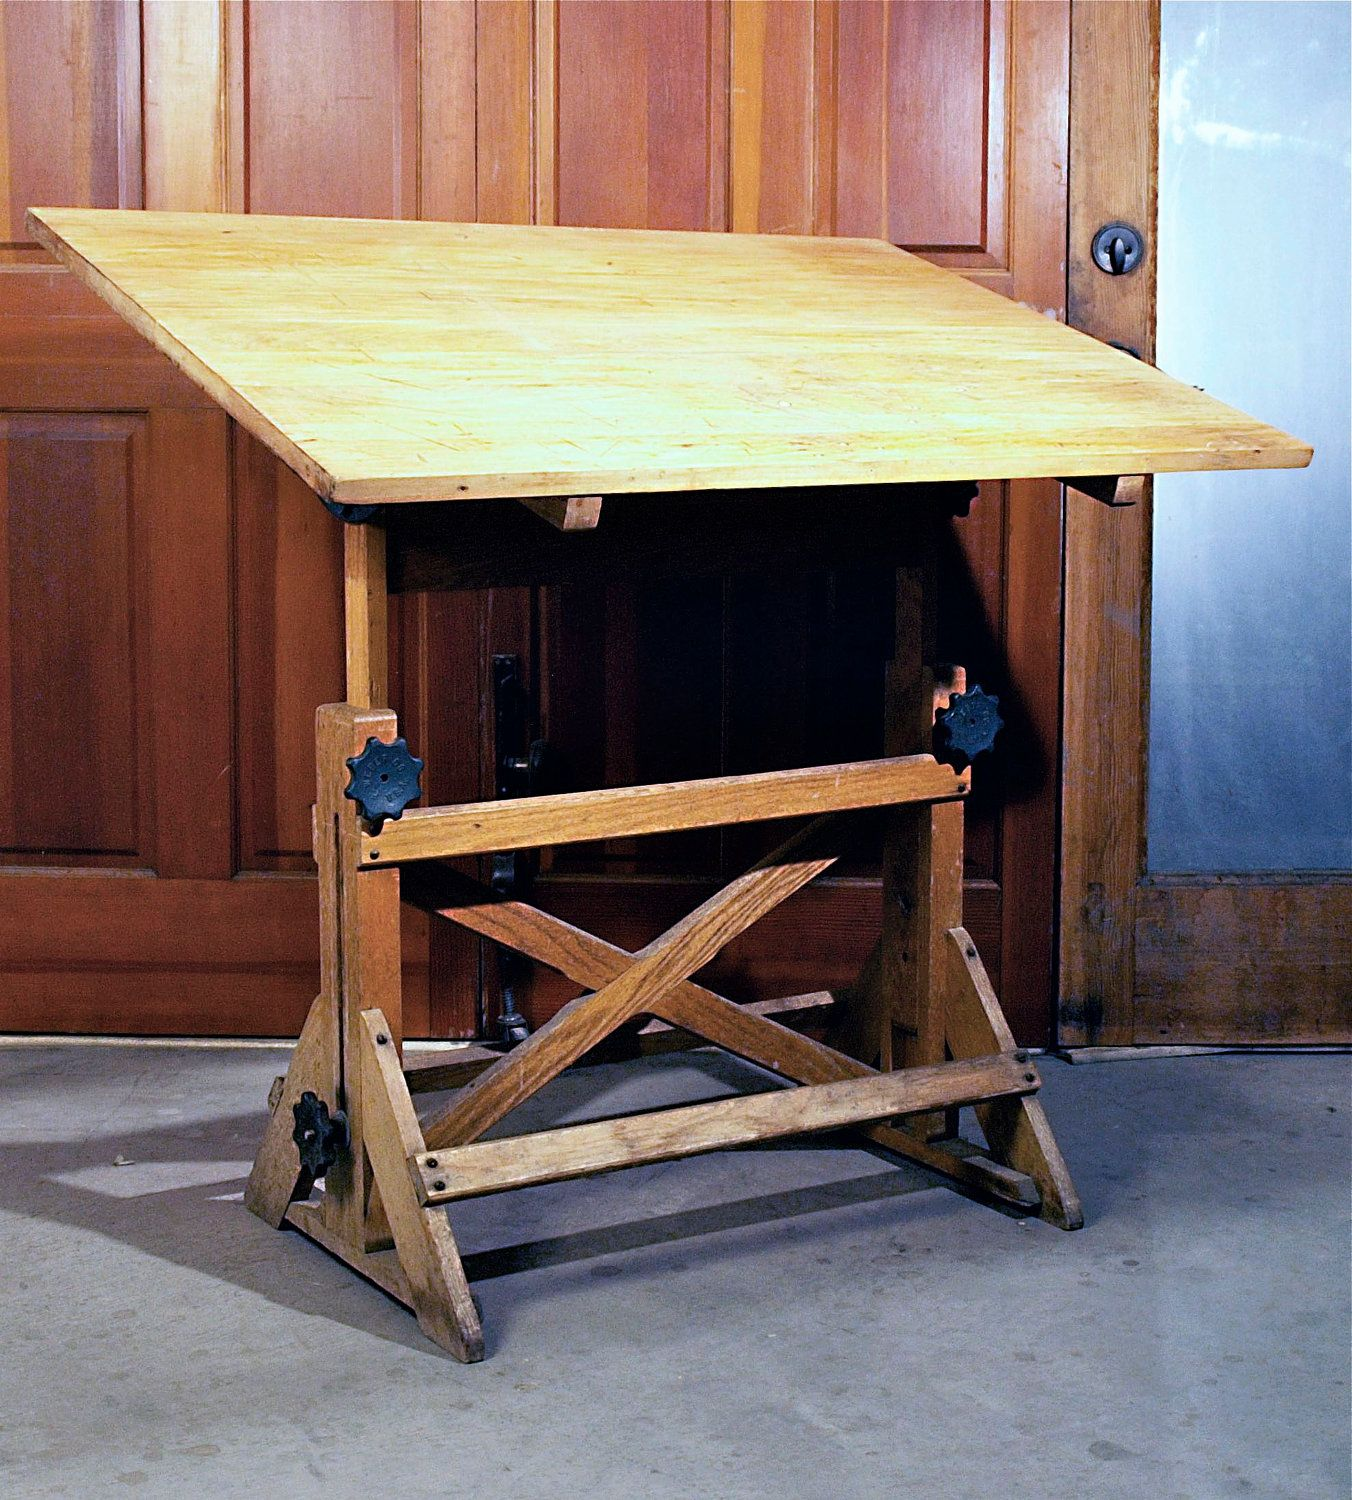 1930s vintage industrial fully adjustable drafting table with oak